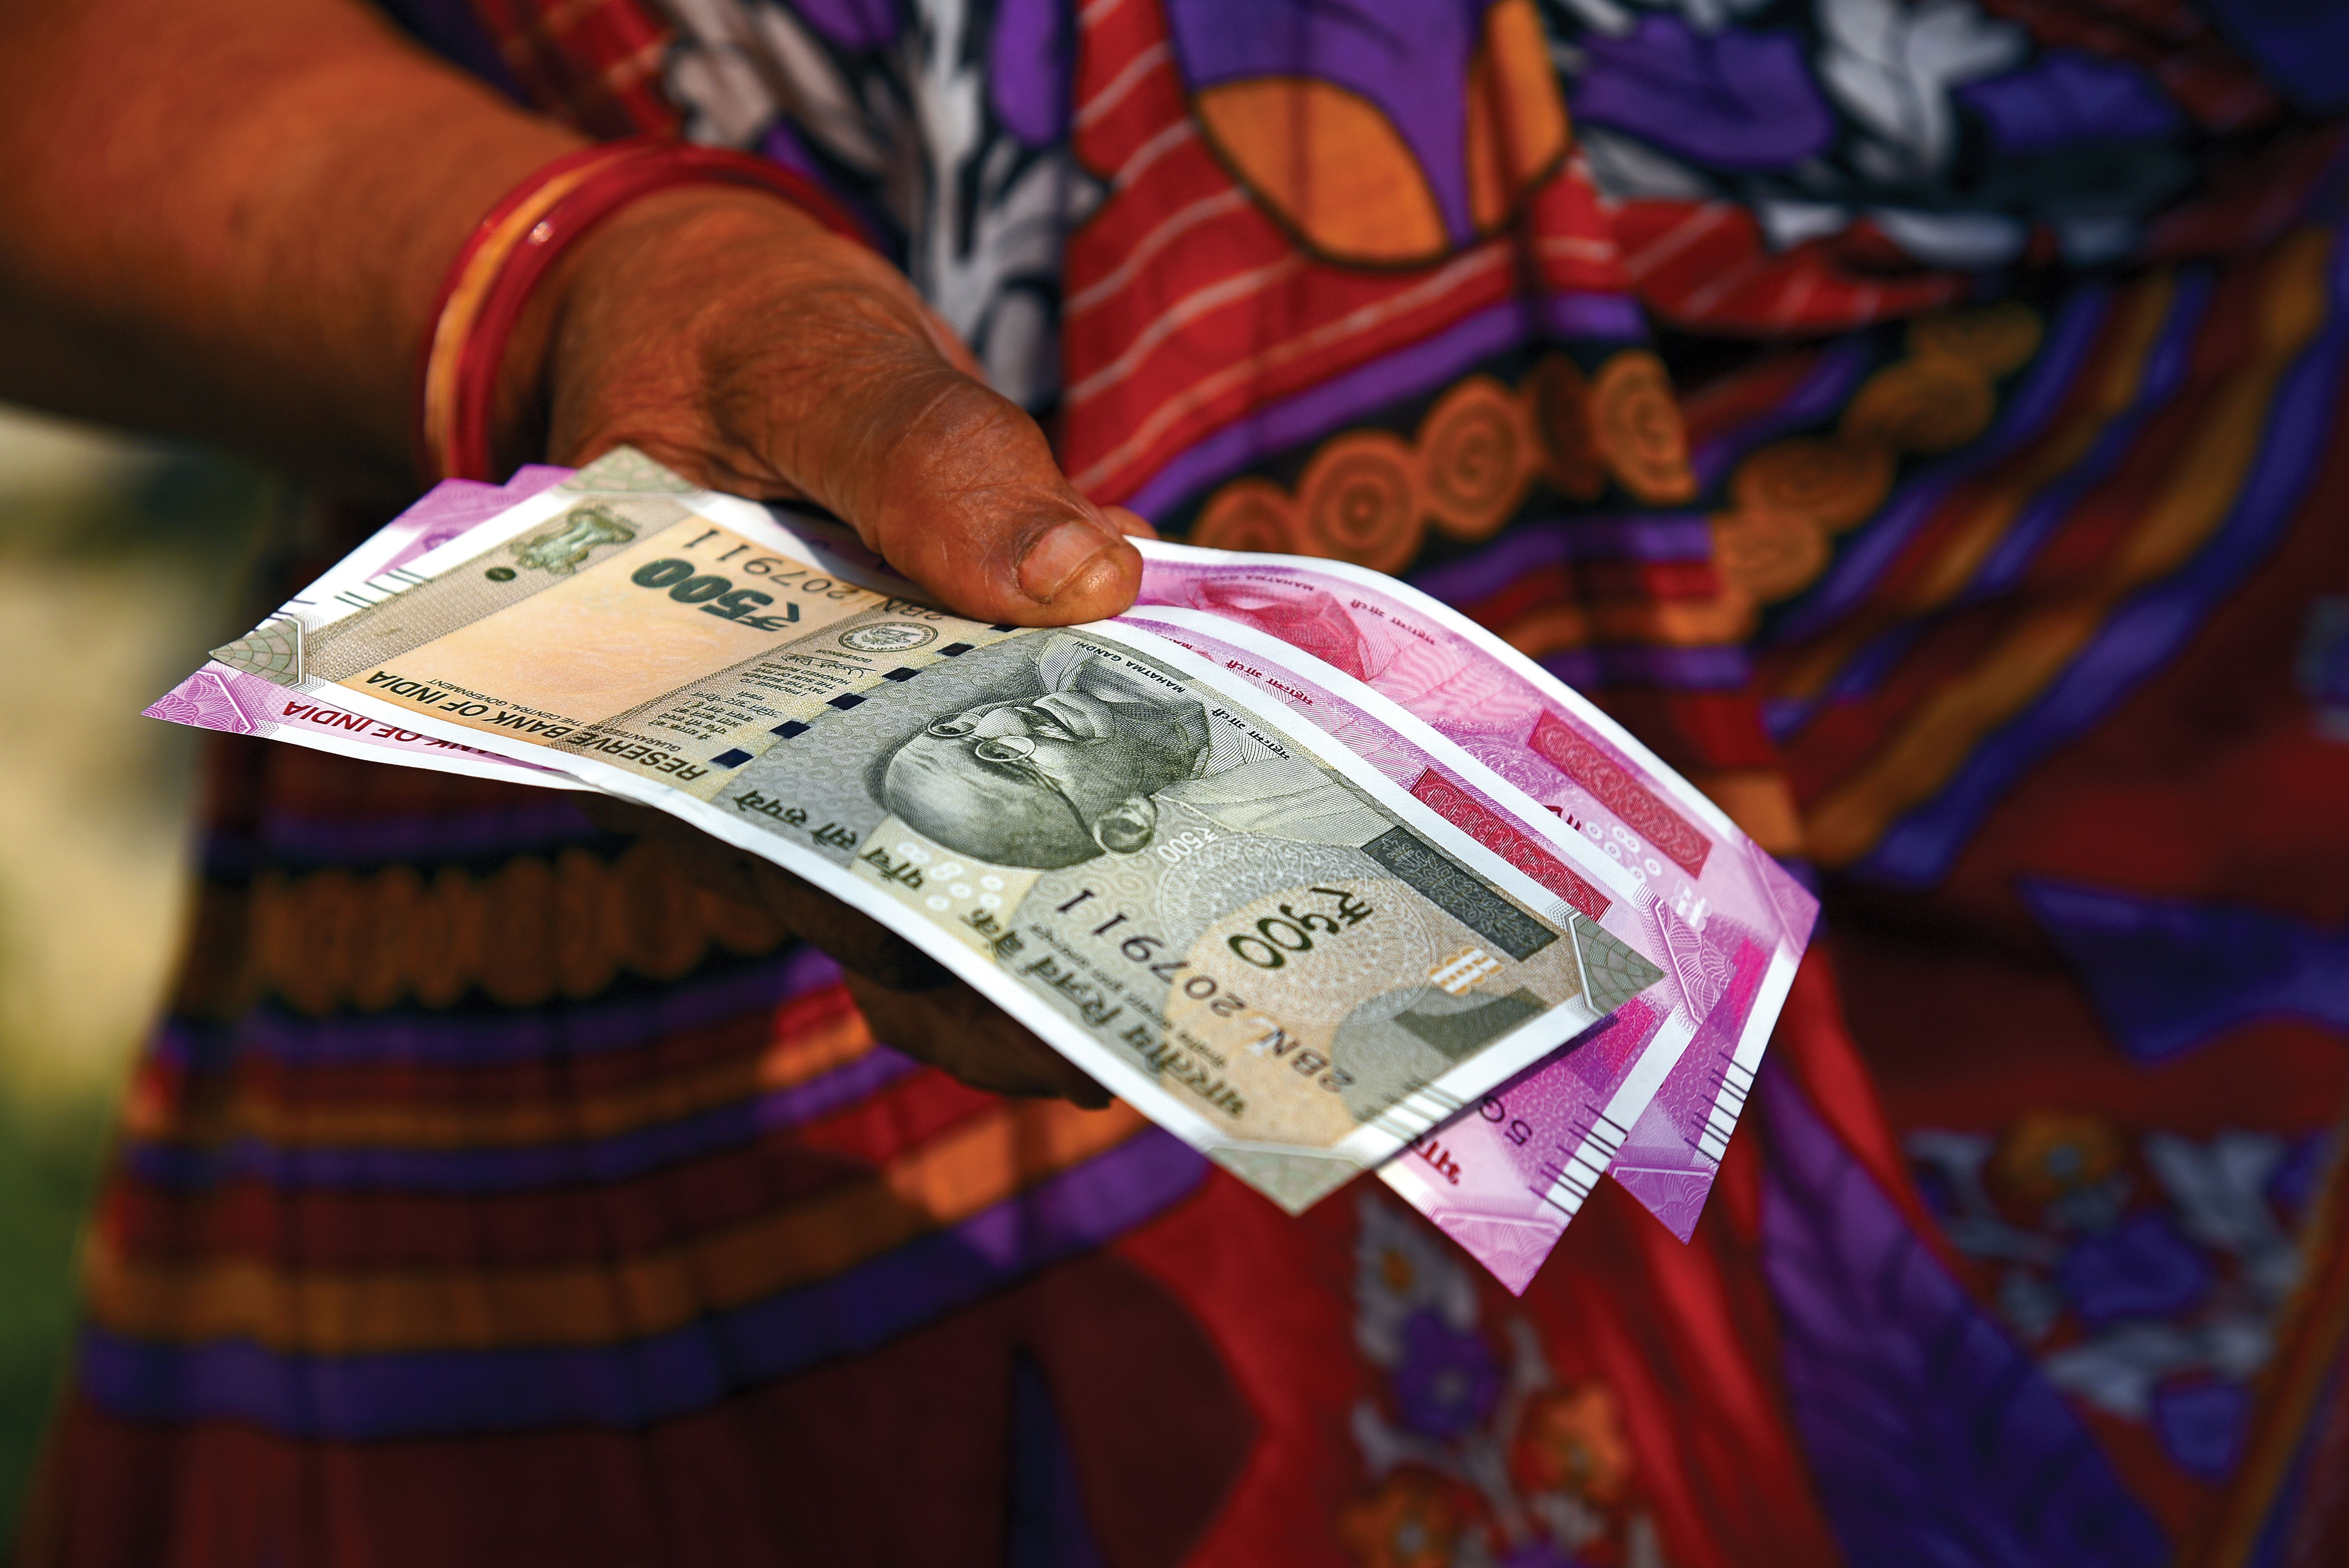 Woman holding money in India